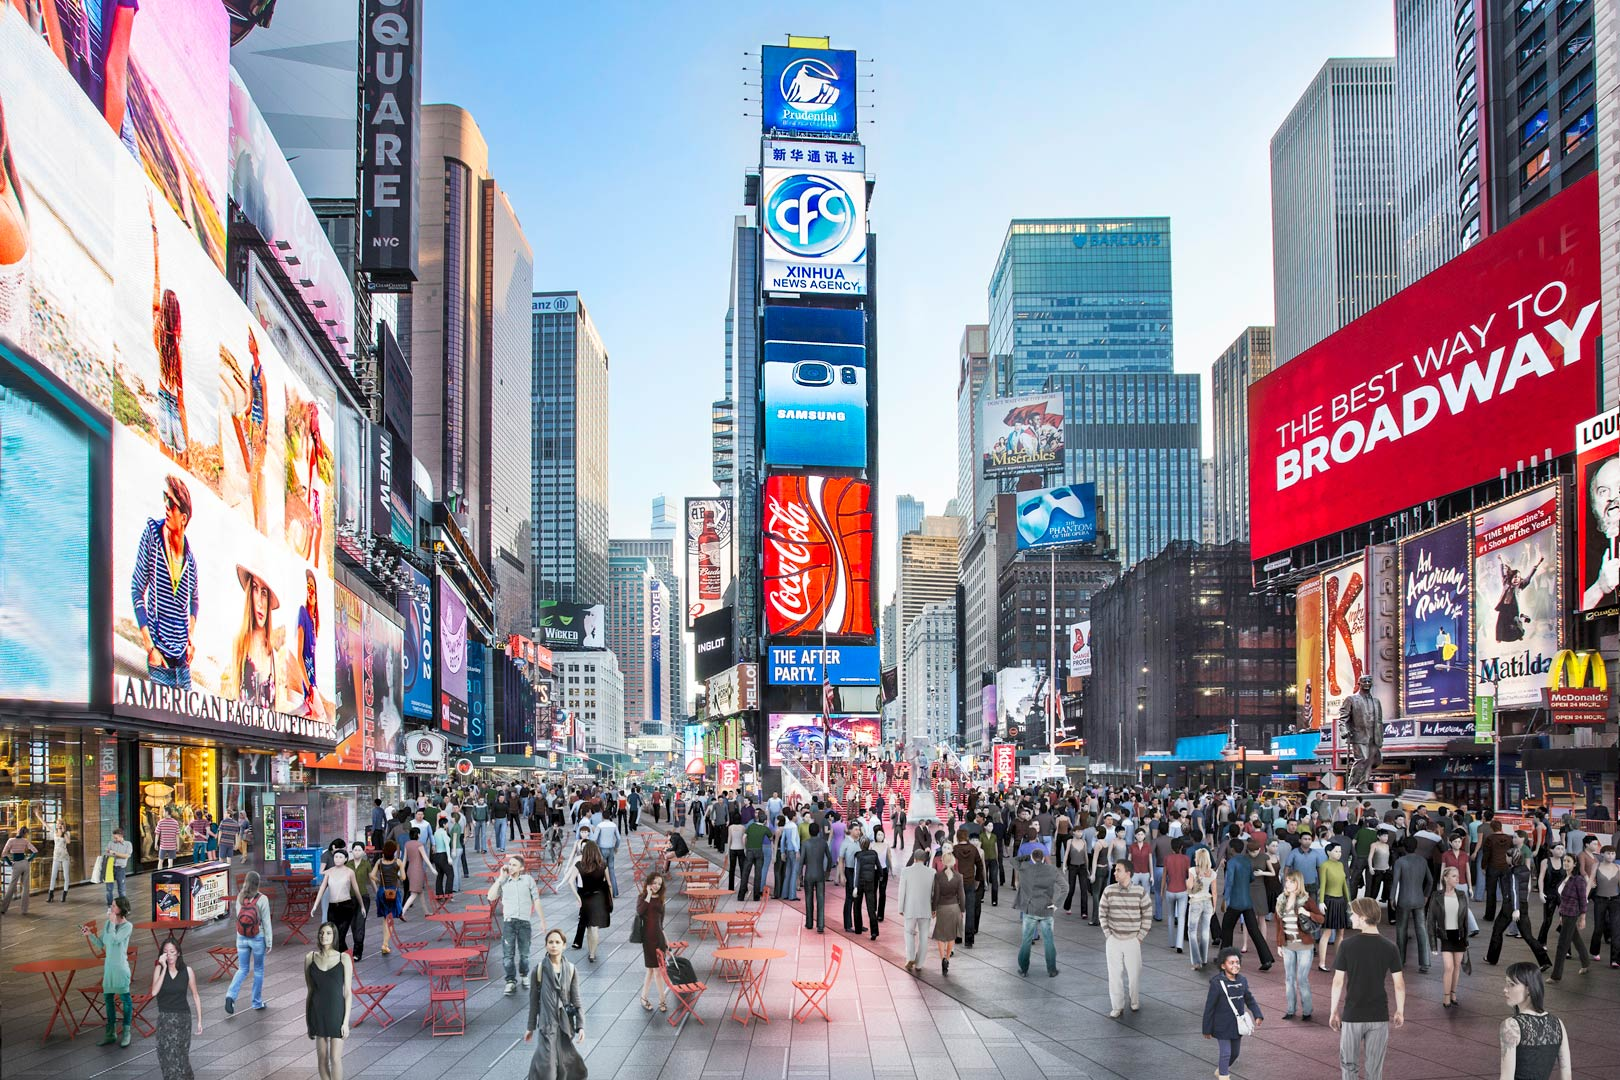 Time square remodelation - Pedestrian Rendering